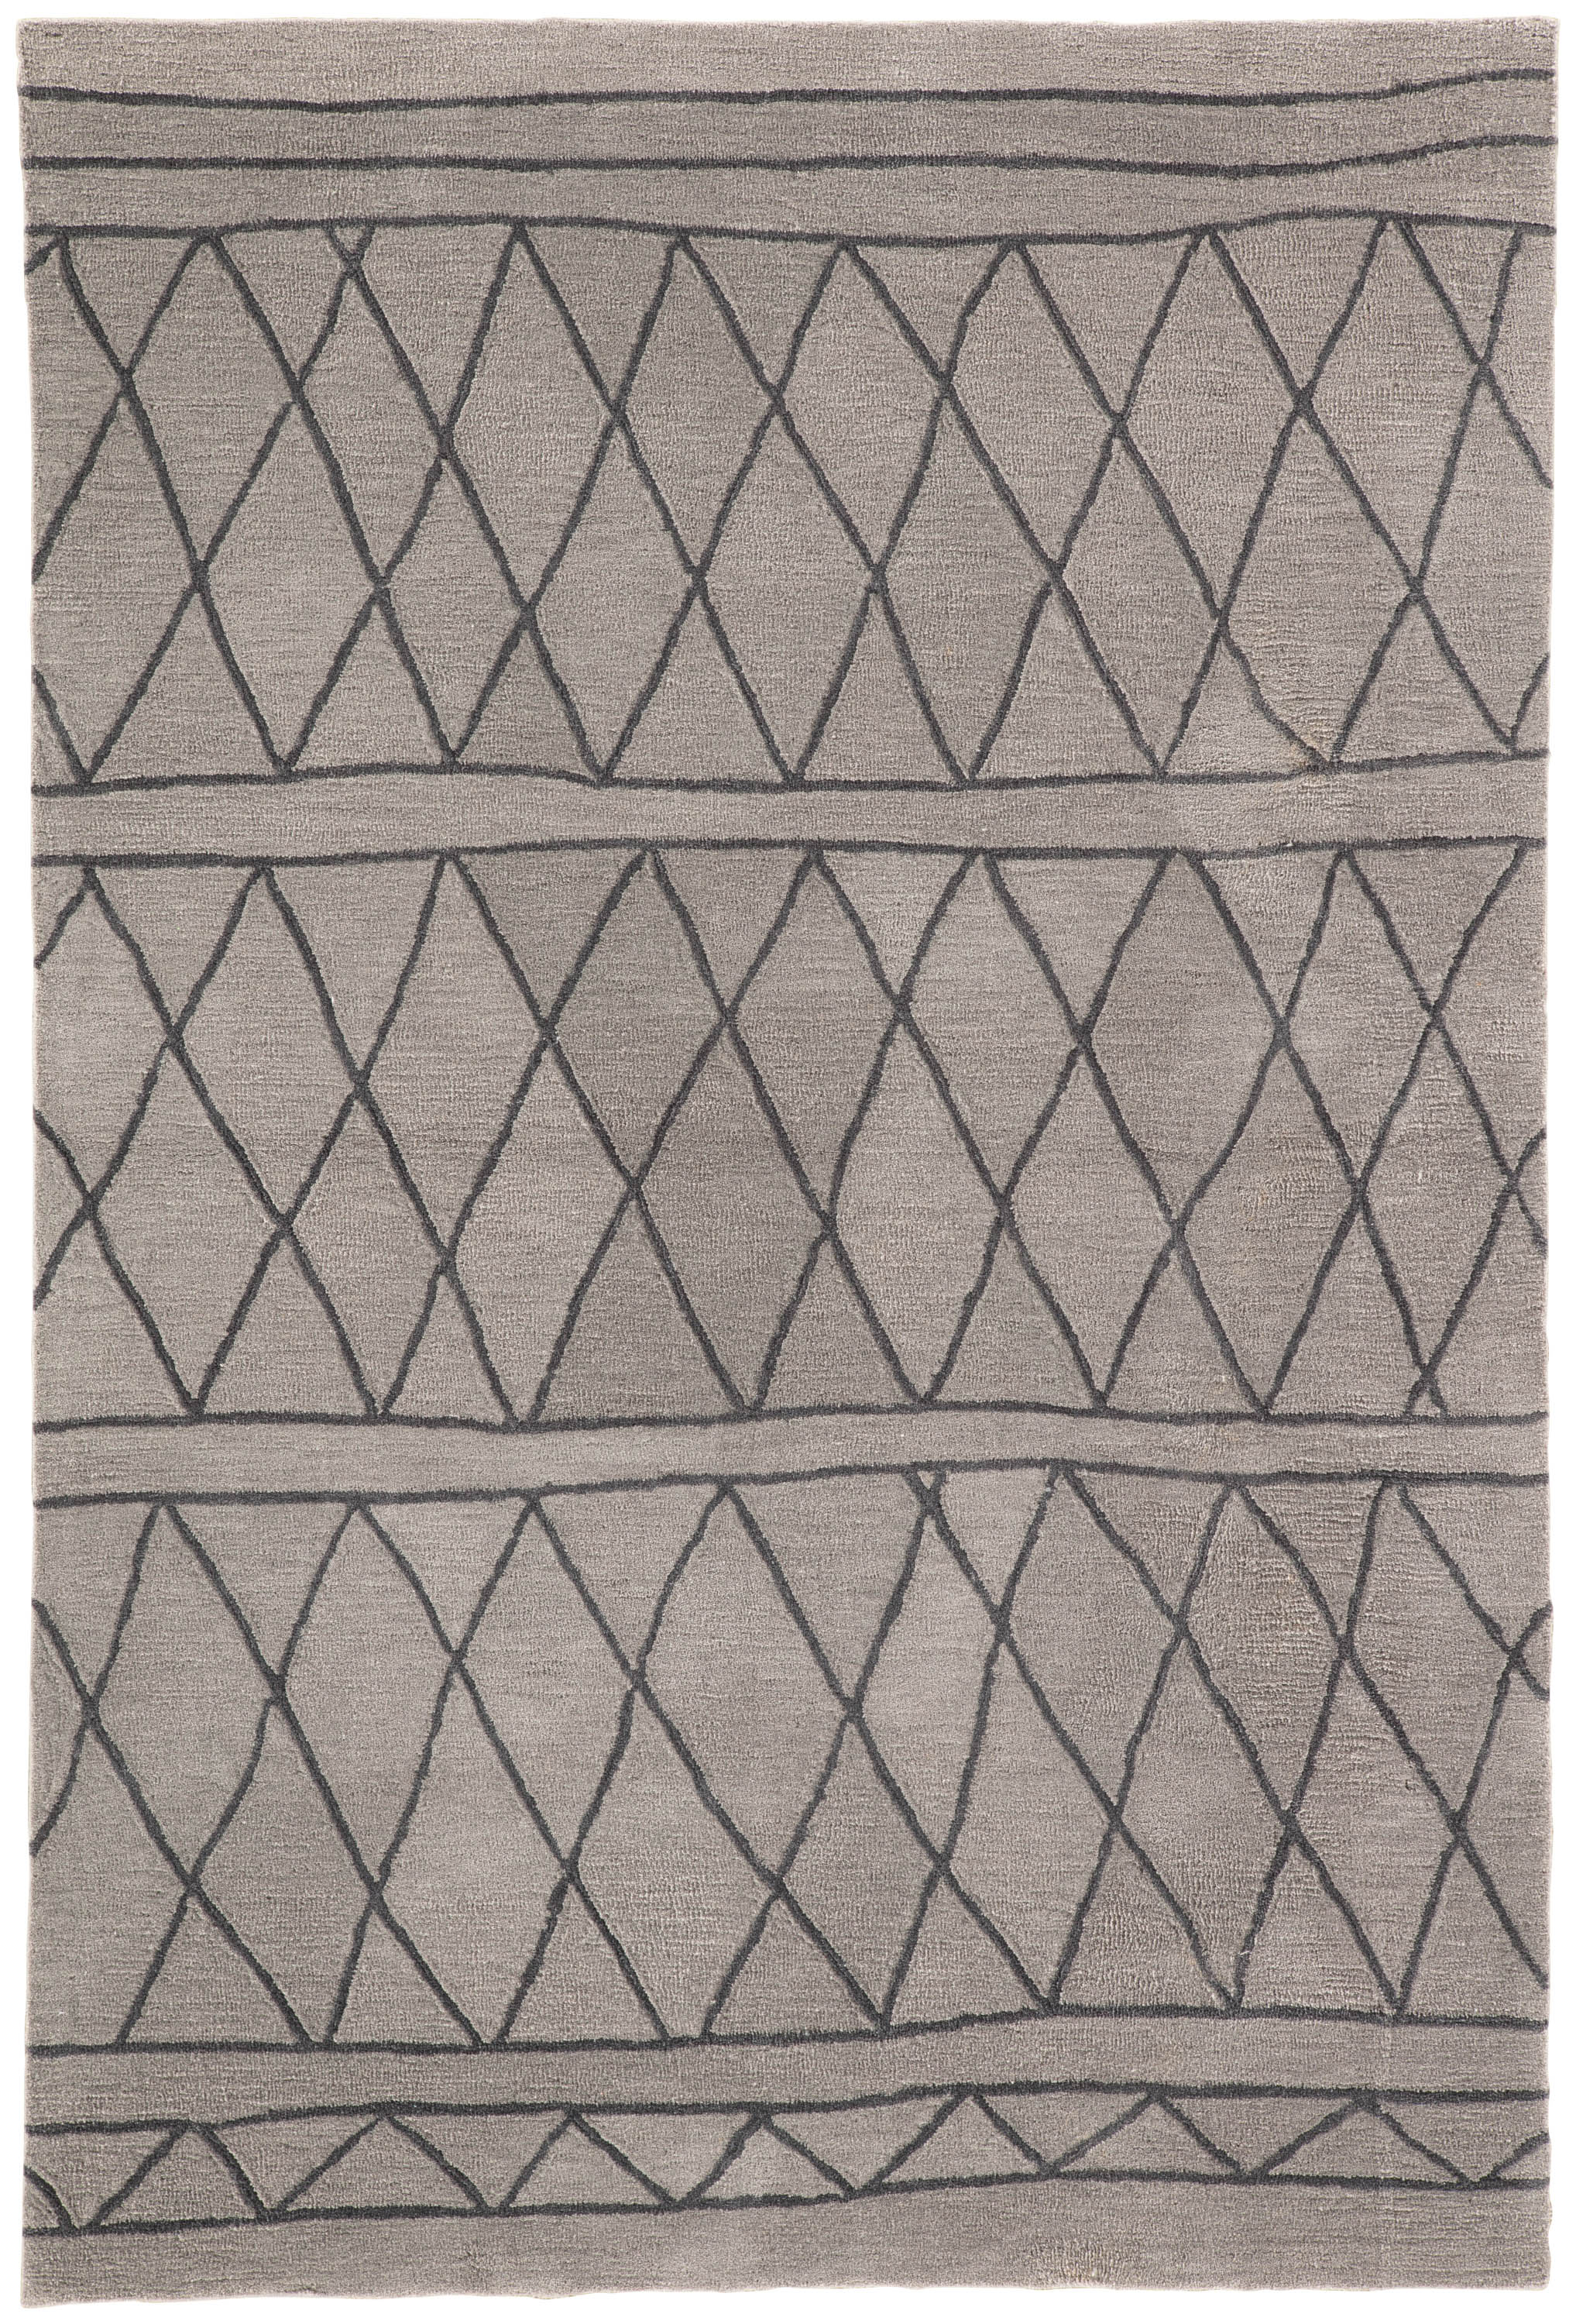 Rectangle Lightgray Trellis Hand Tufted Synthetics Persian & Moroccan recommended for Bedroom, Bathroom, Dining Room, Office, Hallway, Living Room